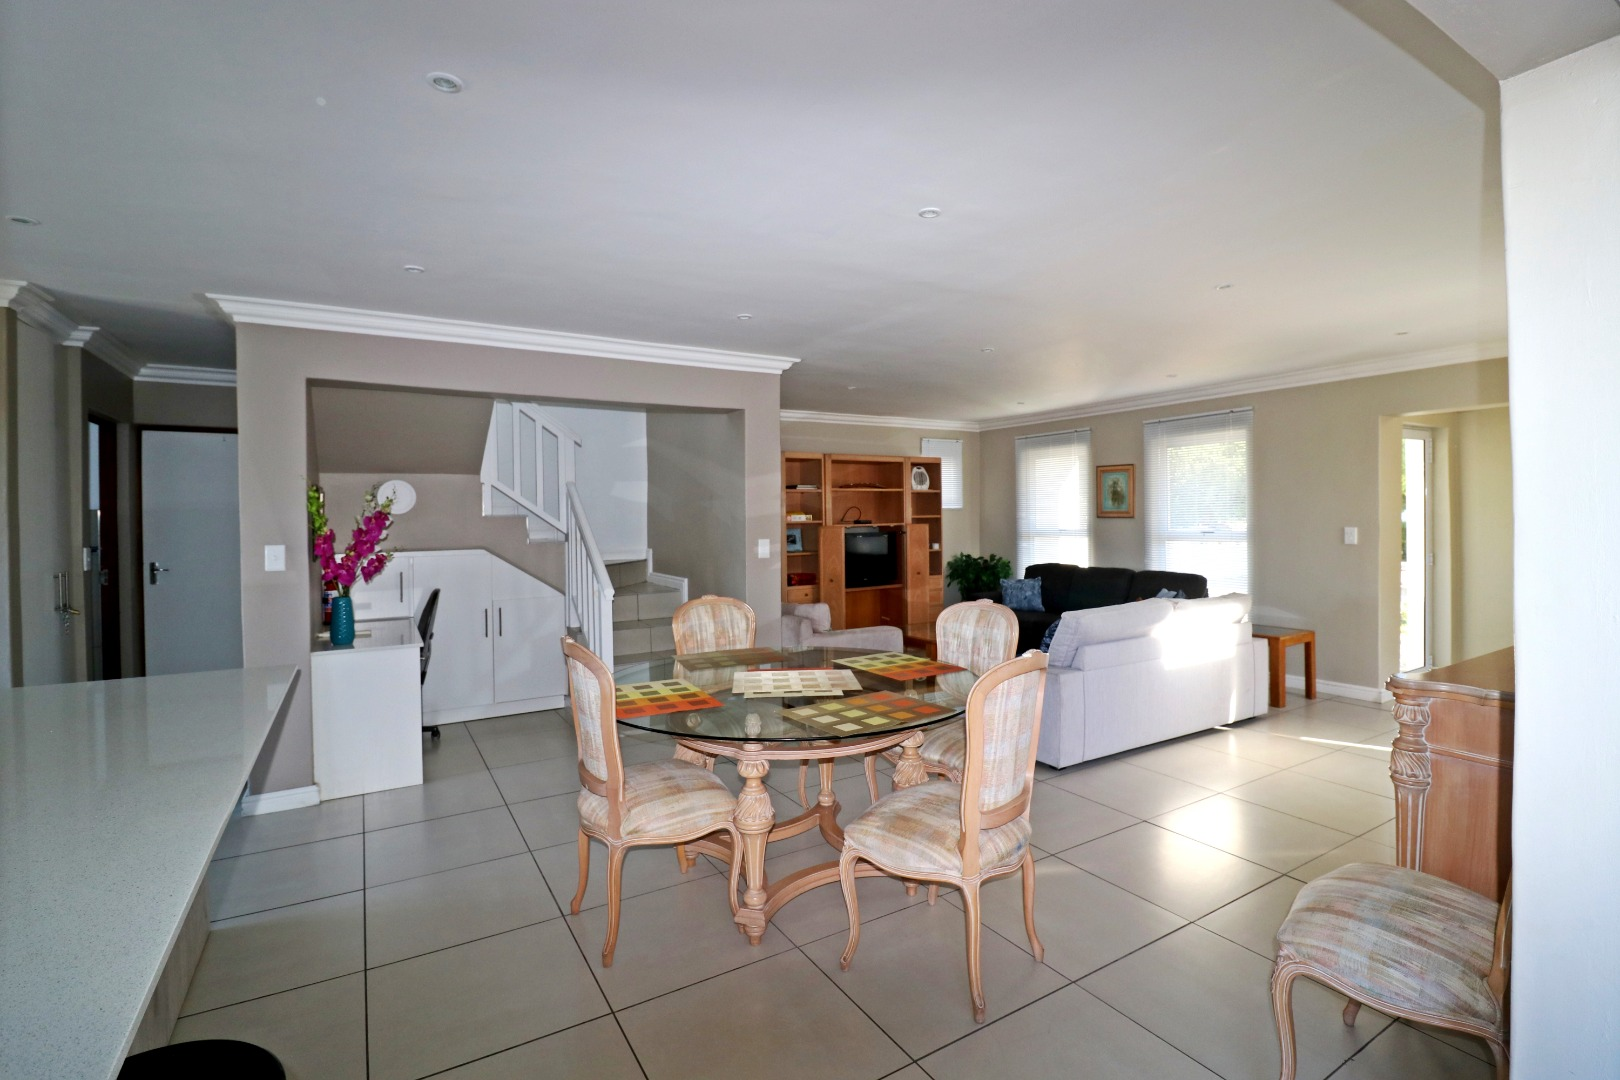 3 Bedroom House For Sale in Yzerfontein